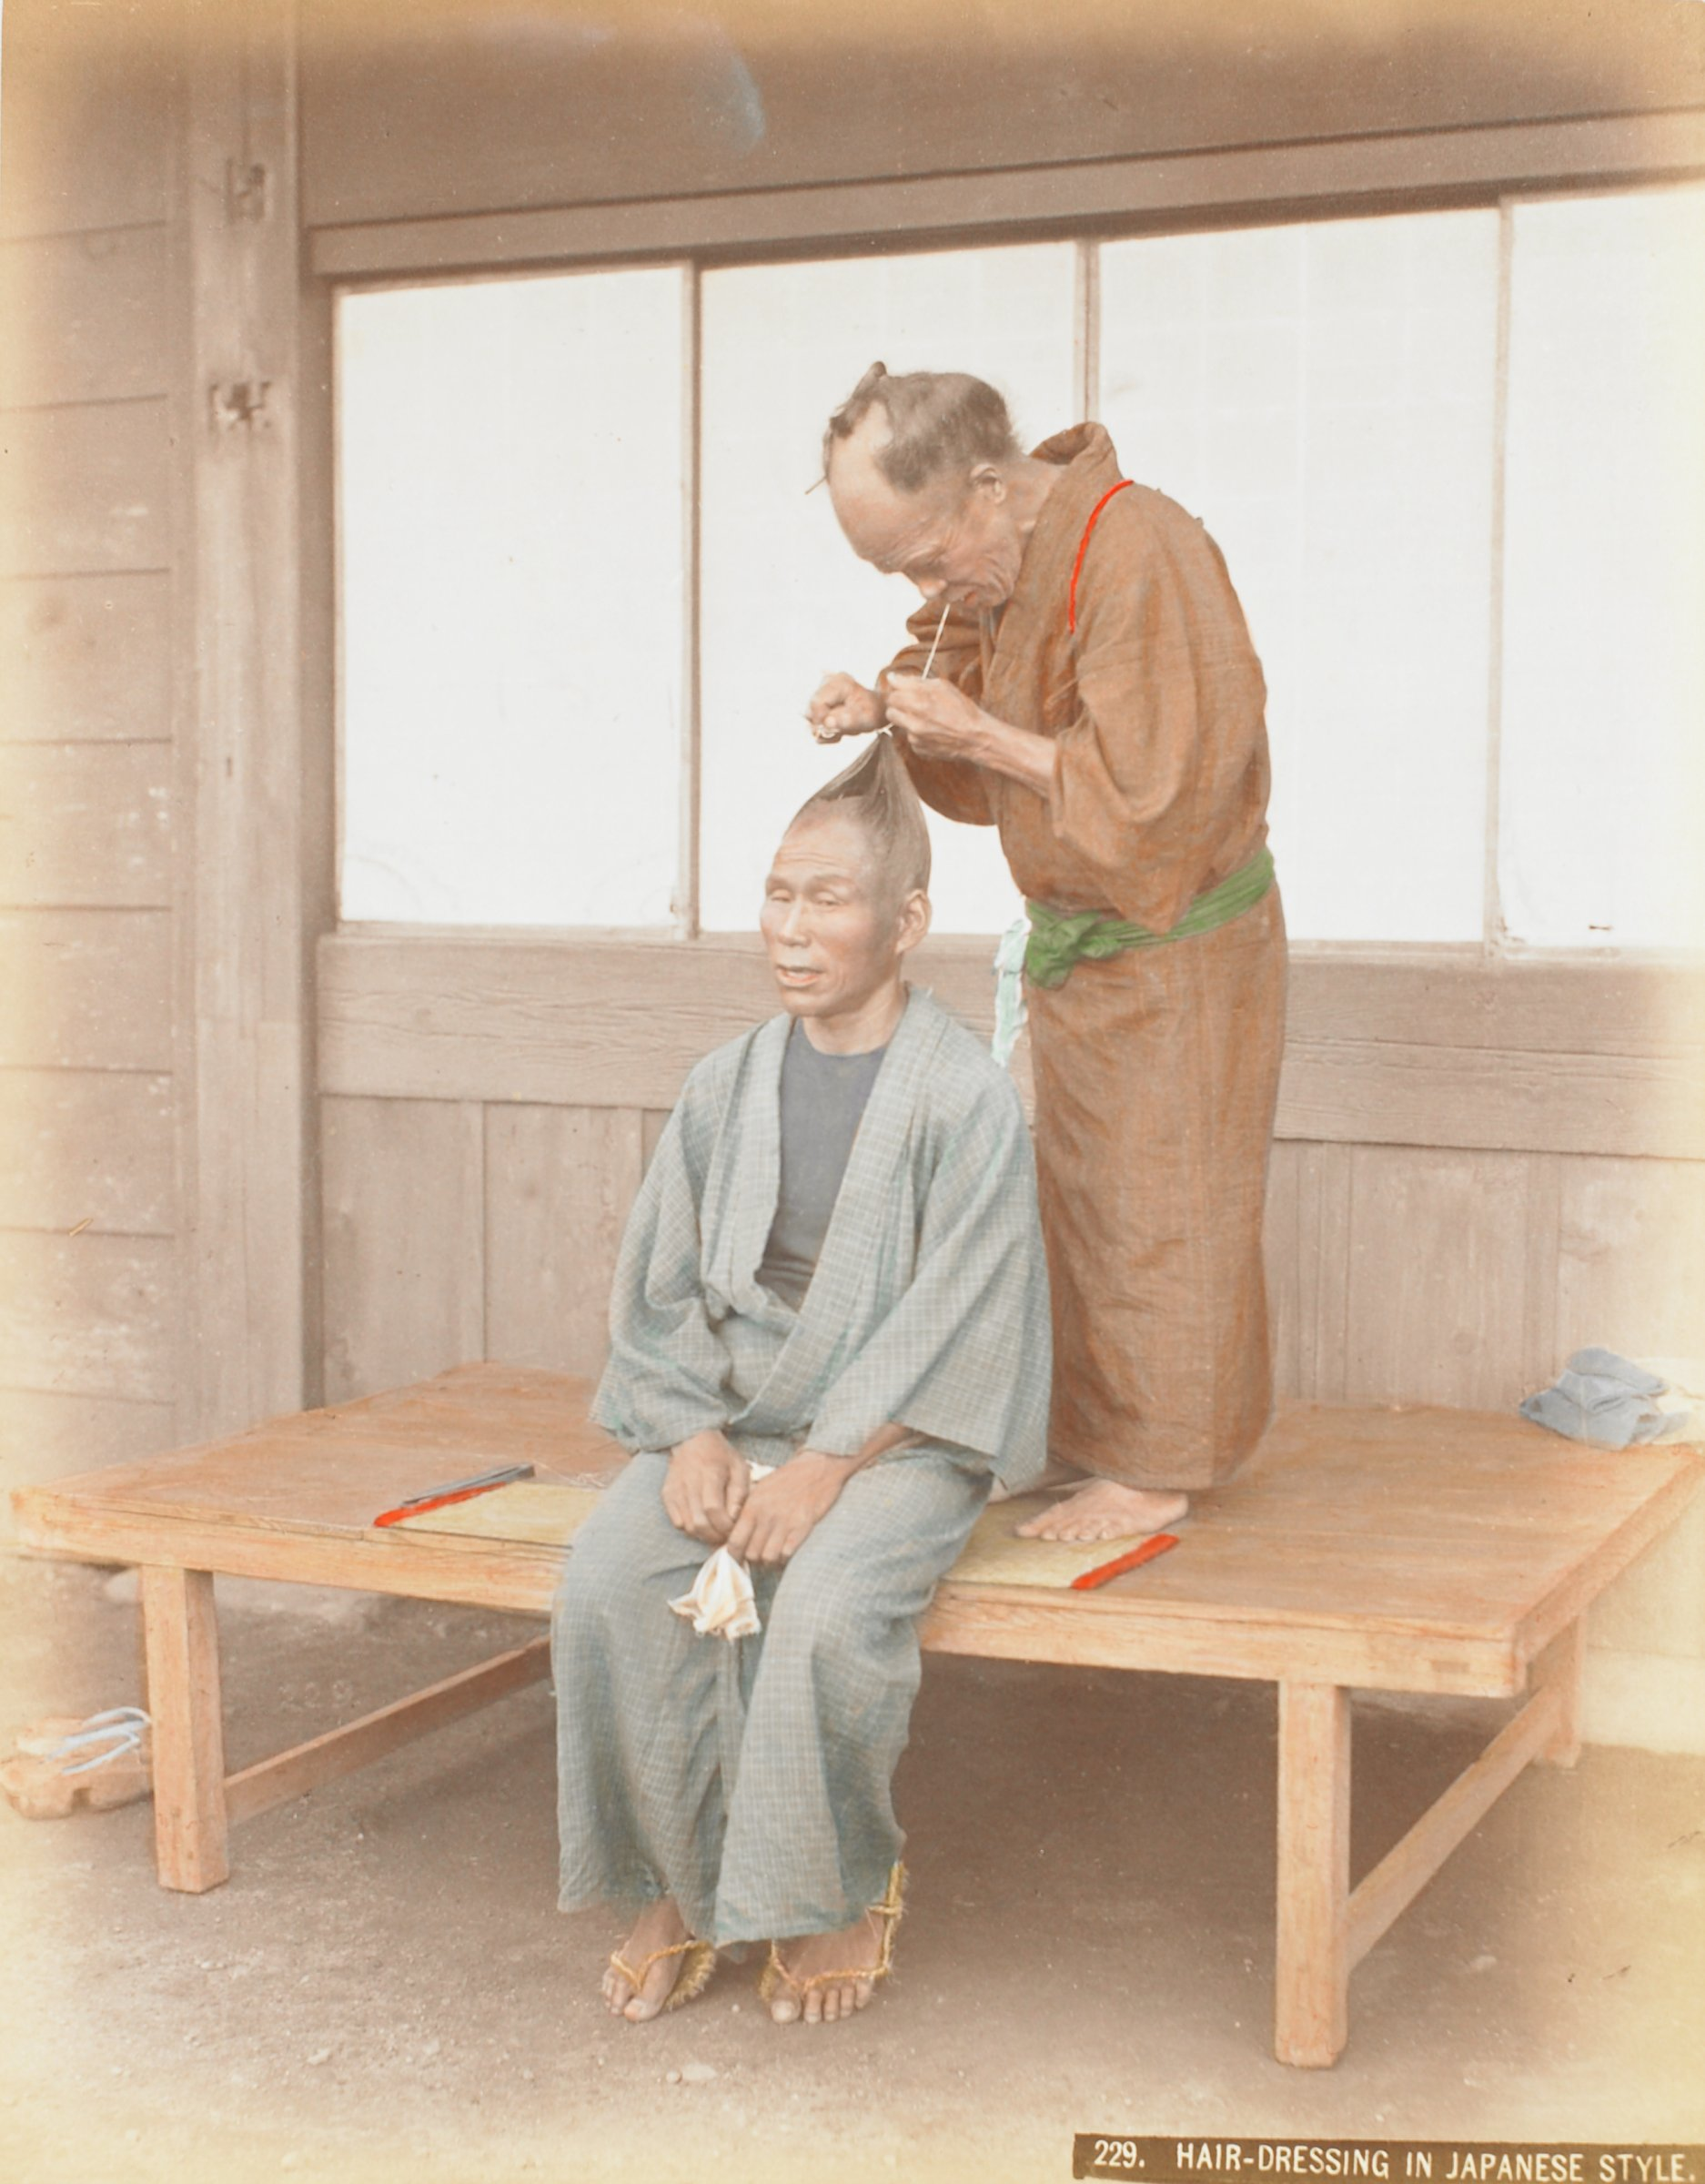 Samurai (.6, recto); Hair Dressing in Japan (.7, verso), Attributed to Kusakabe Kimbei, hand-colored albumen prints mounted to album page